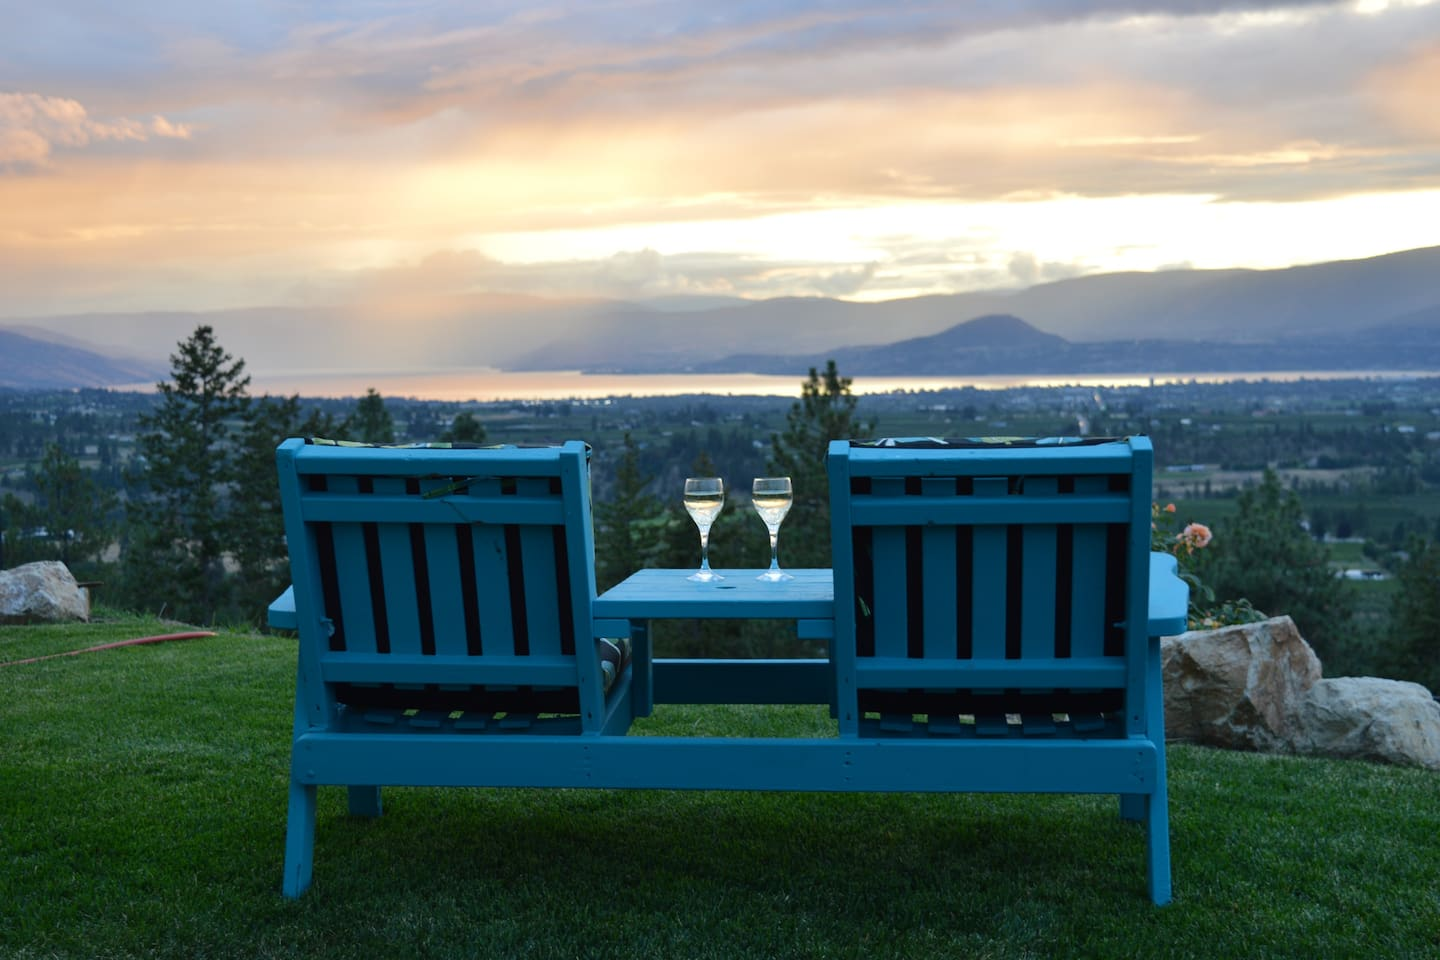 Kelowna Lookout, offering magnificent views, relaxed and peaceful ambiance.